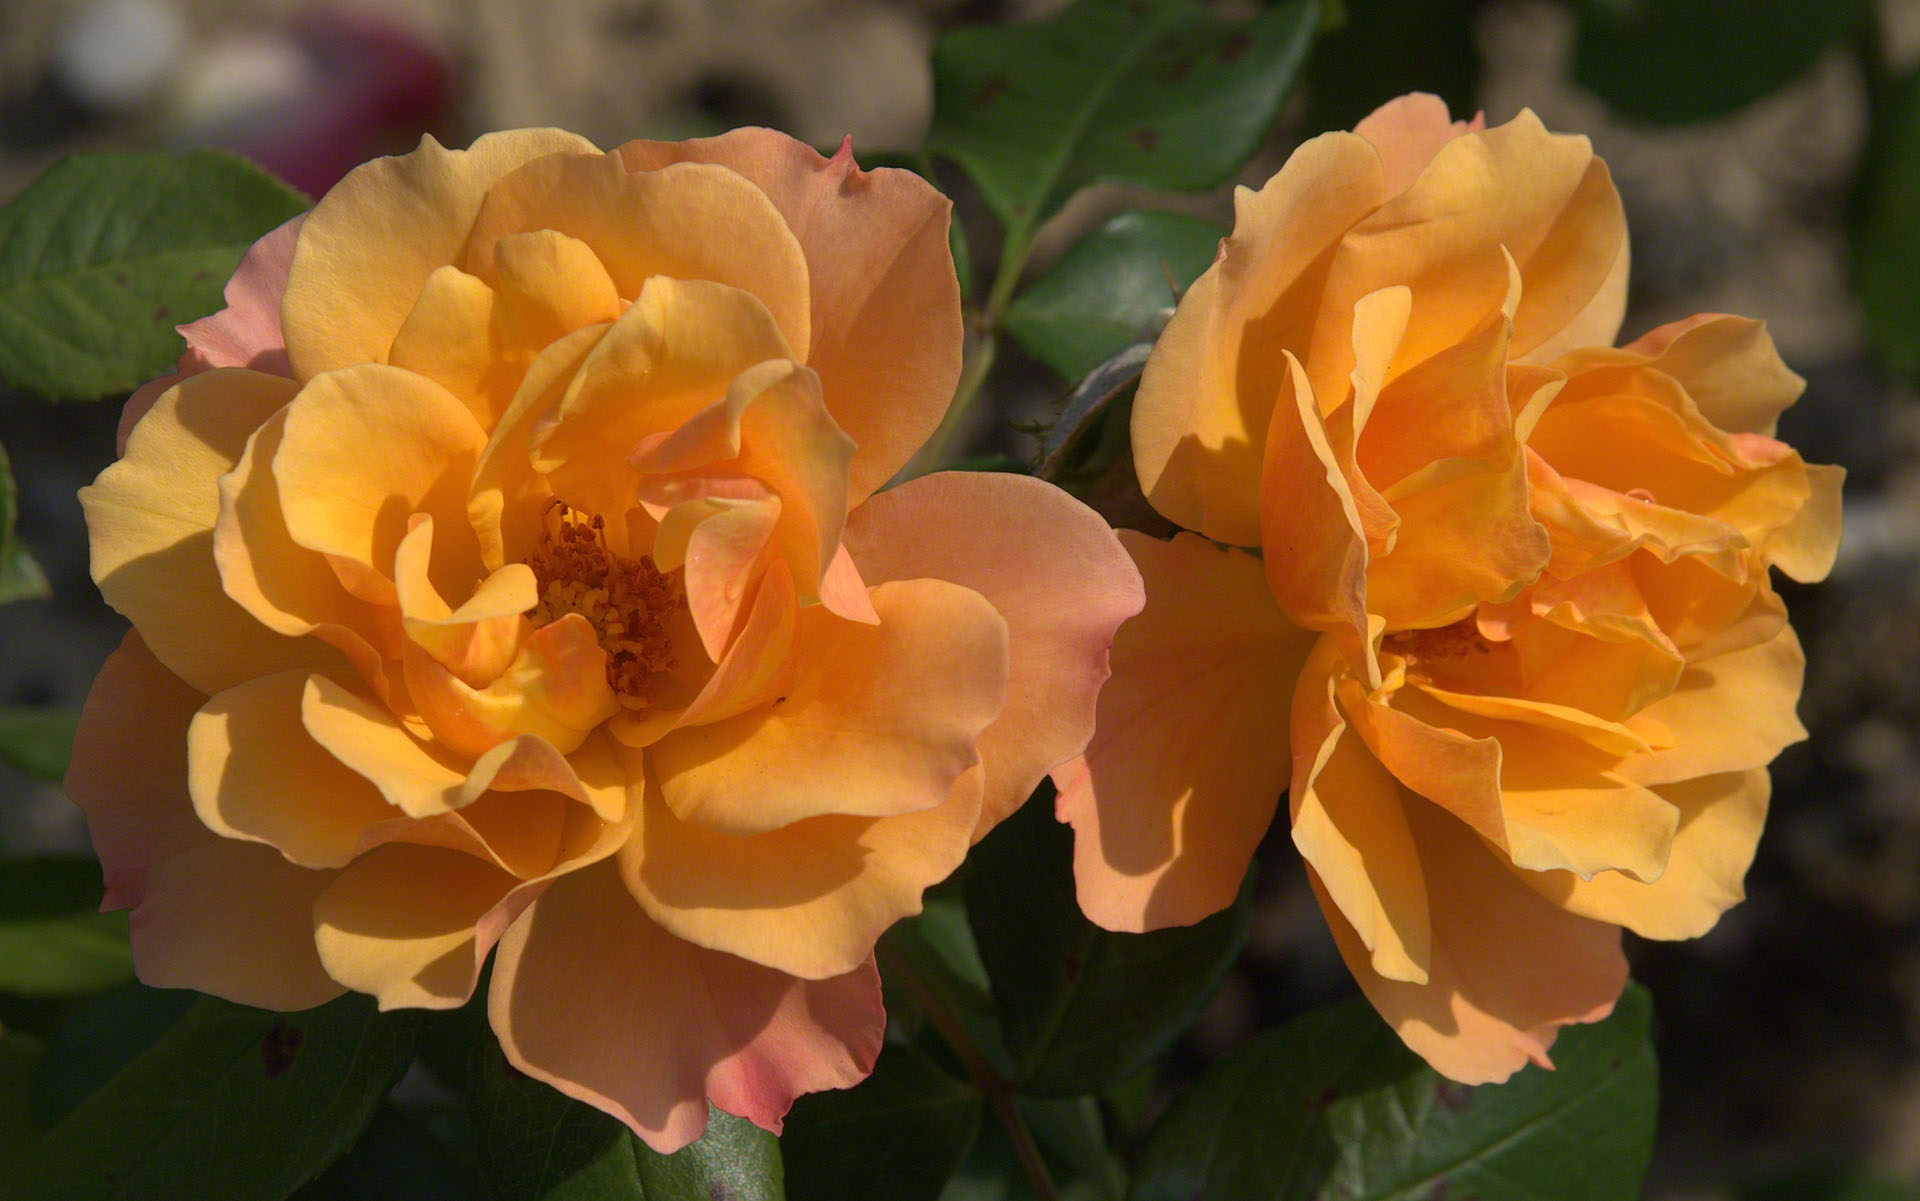 http://www.fabiovisentin.com/photography/photo/12/orange-pink-rose-dsc02357.jpg